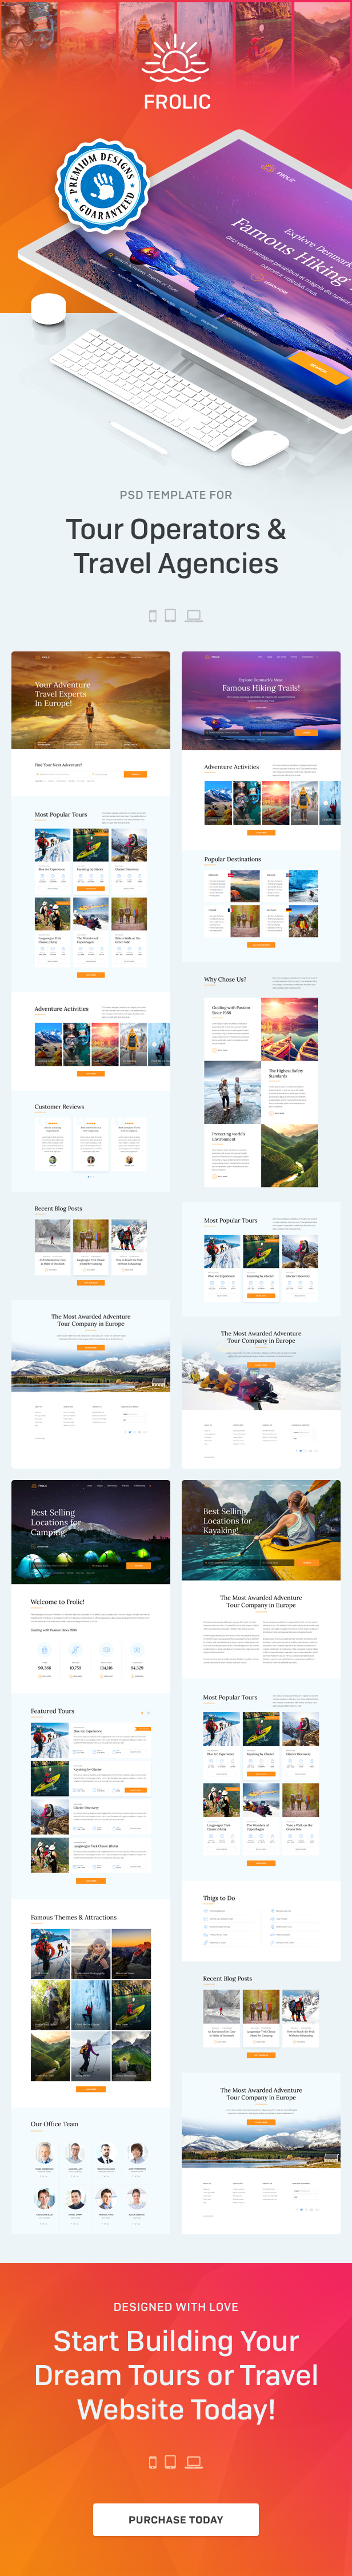 FROLIC - PSD Template for Tour Operators & Travel Agencies